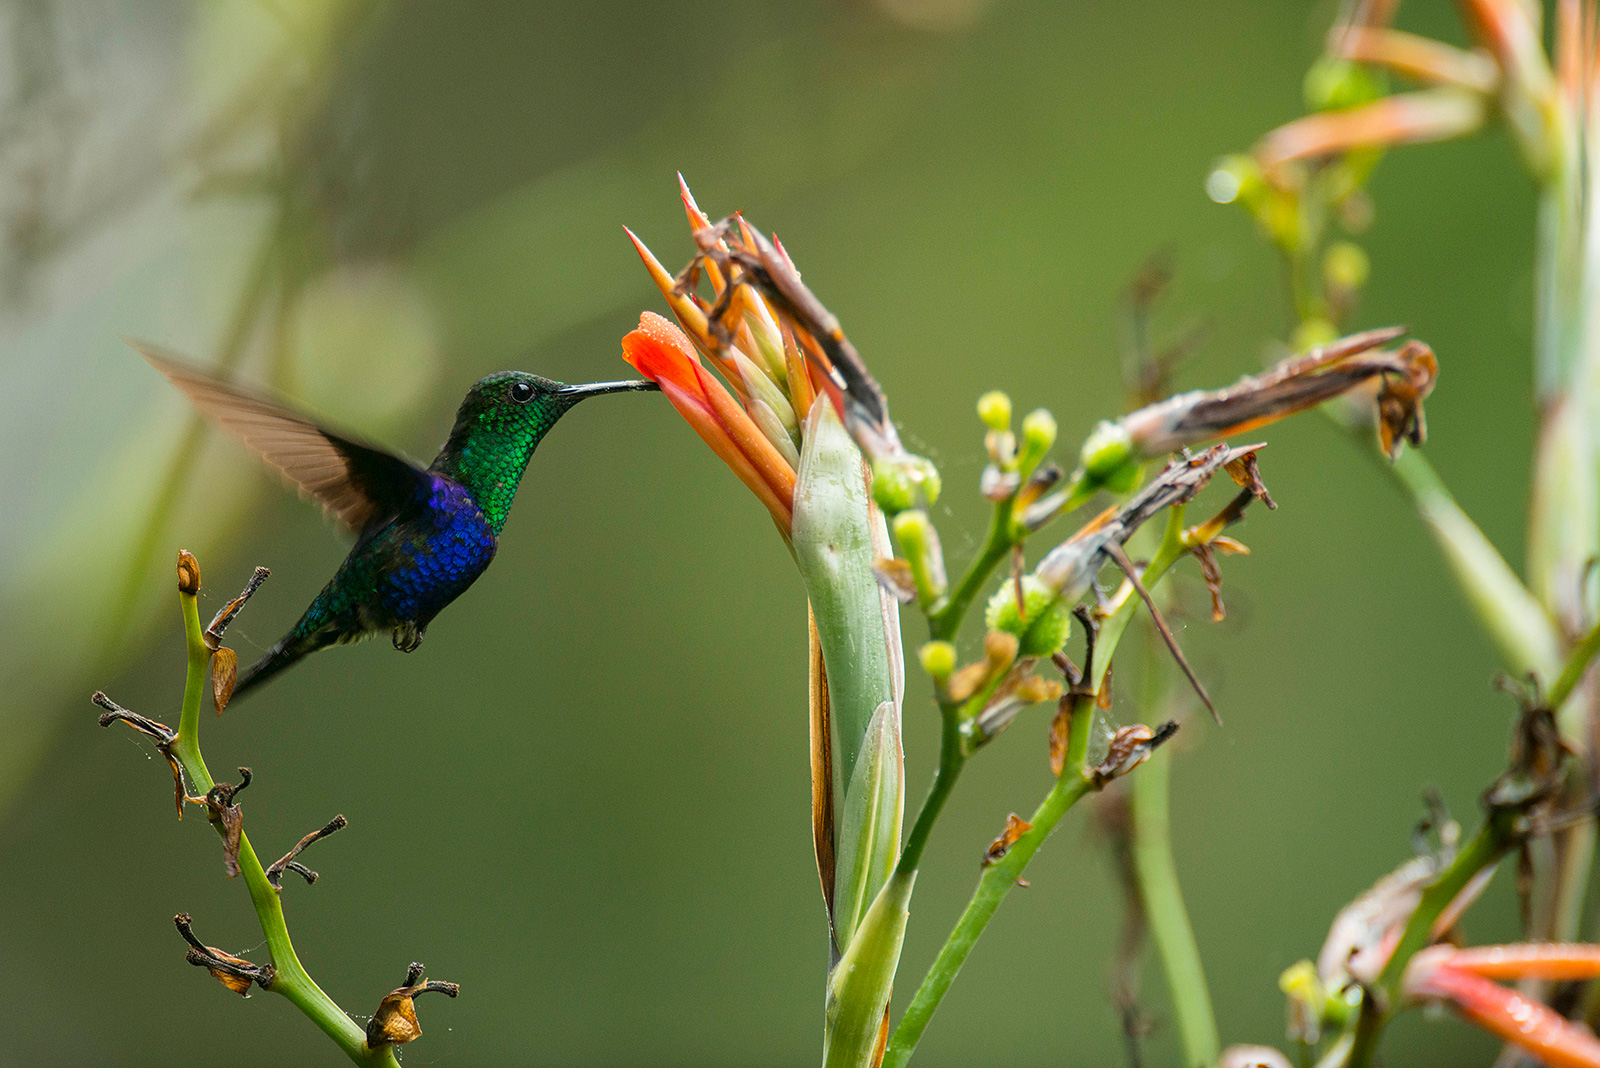 A green and blue hummingbird feeds on a bright orange flower